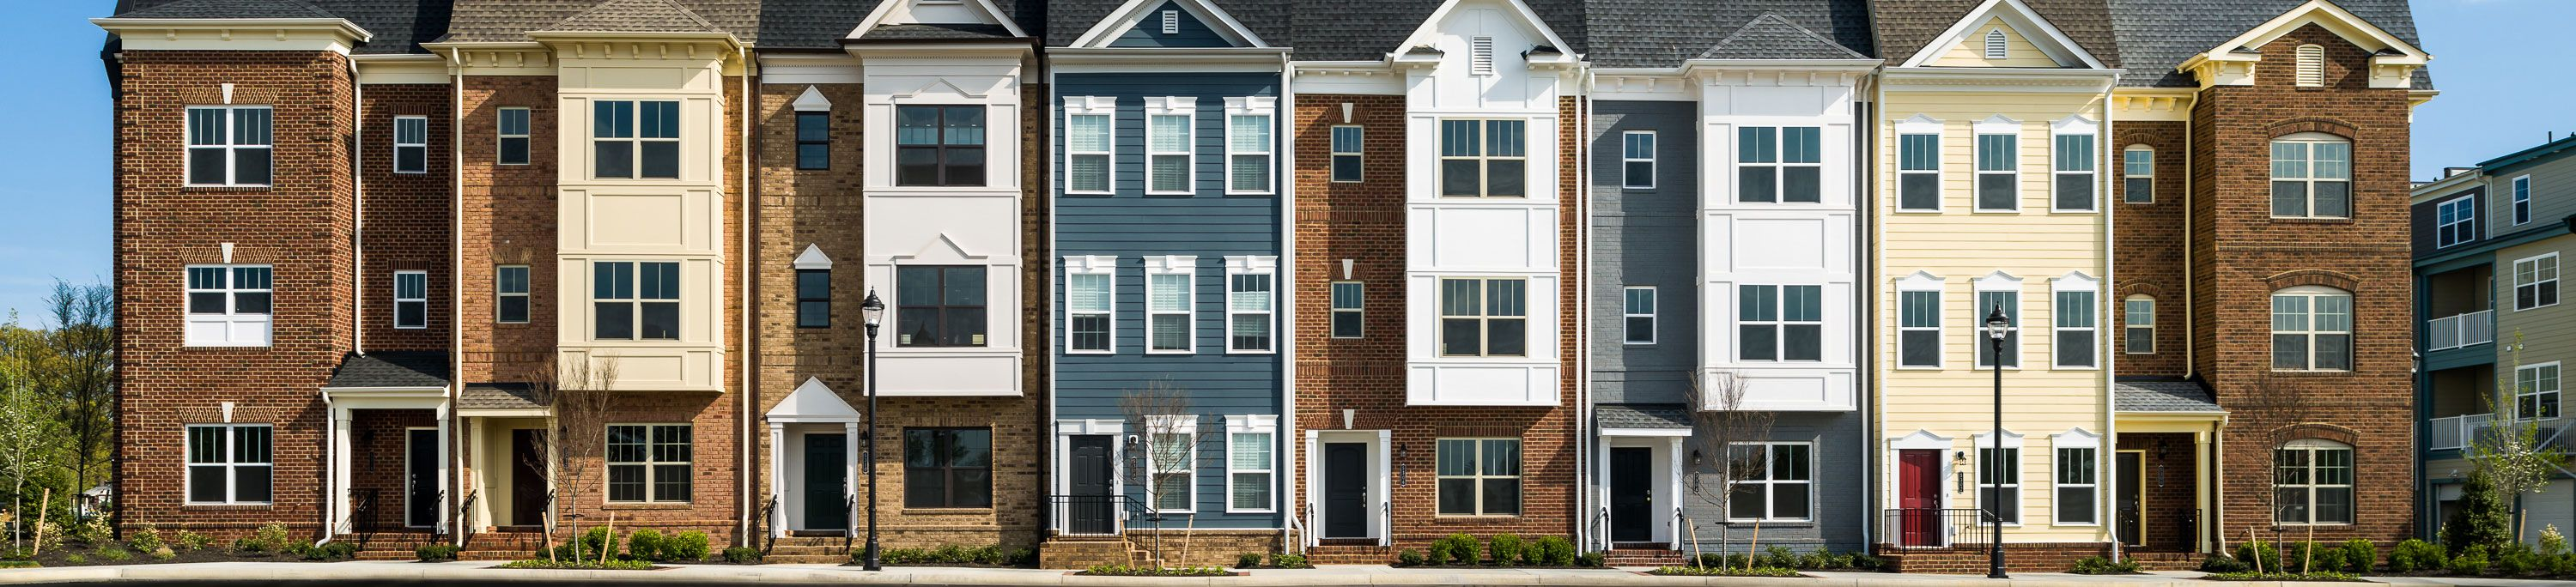 Photo of Libbie Mill townhome elevation